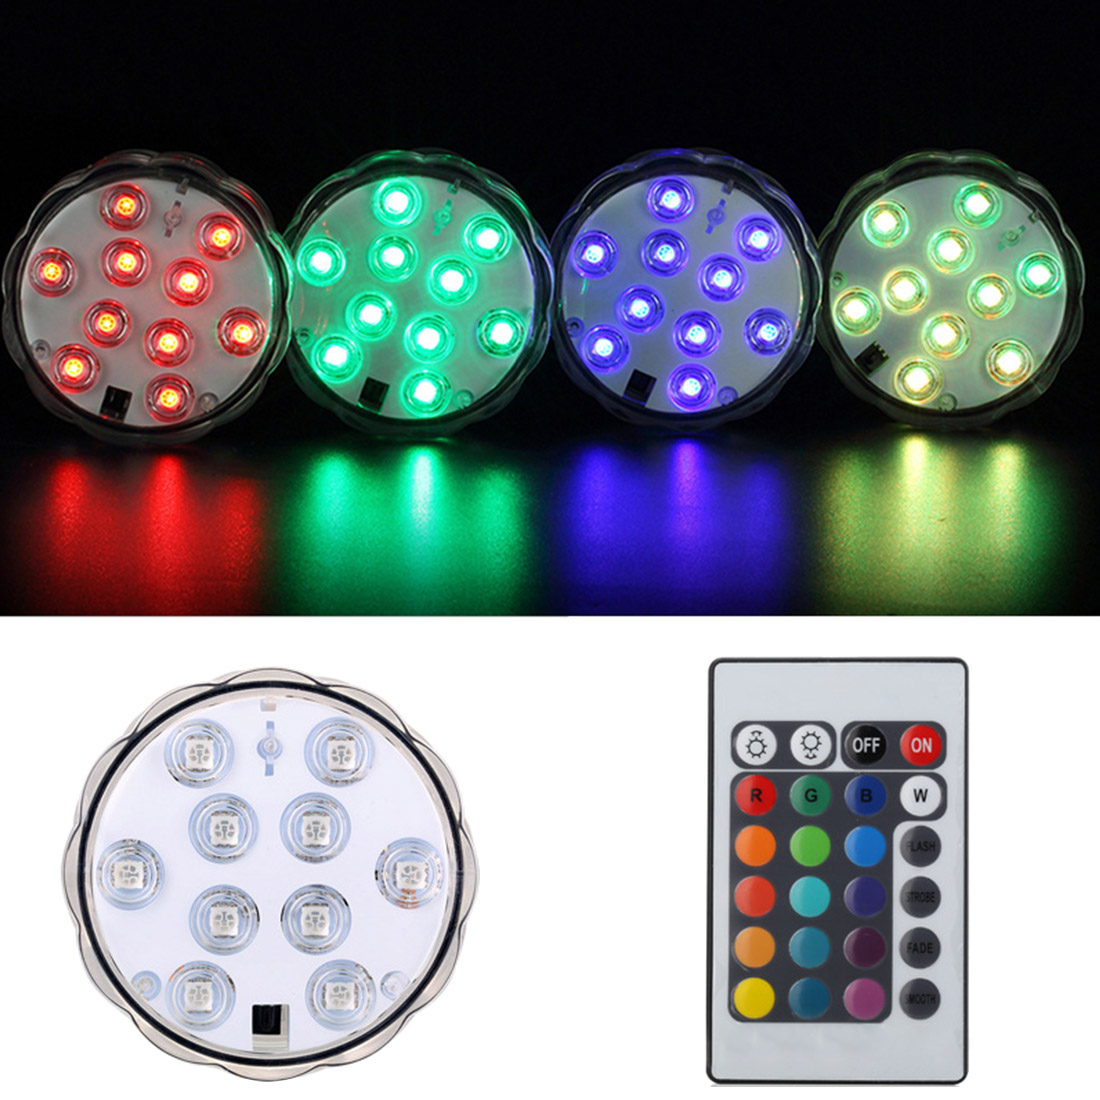 Waterproof 10 LED Underwater Light Remote Controlled RGB Candle Light Battery Operated Night Lamp Party Pool Decoration